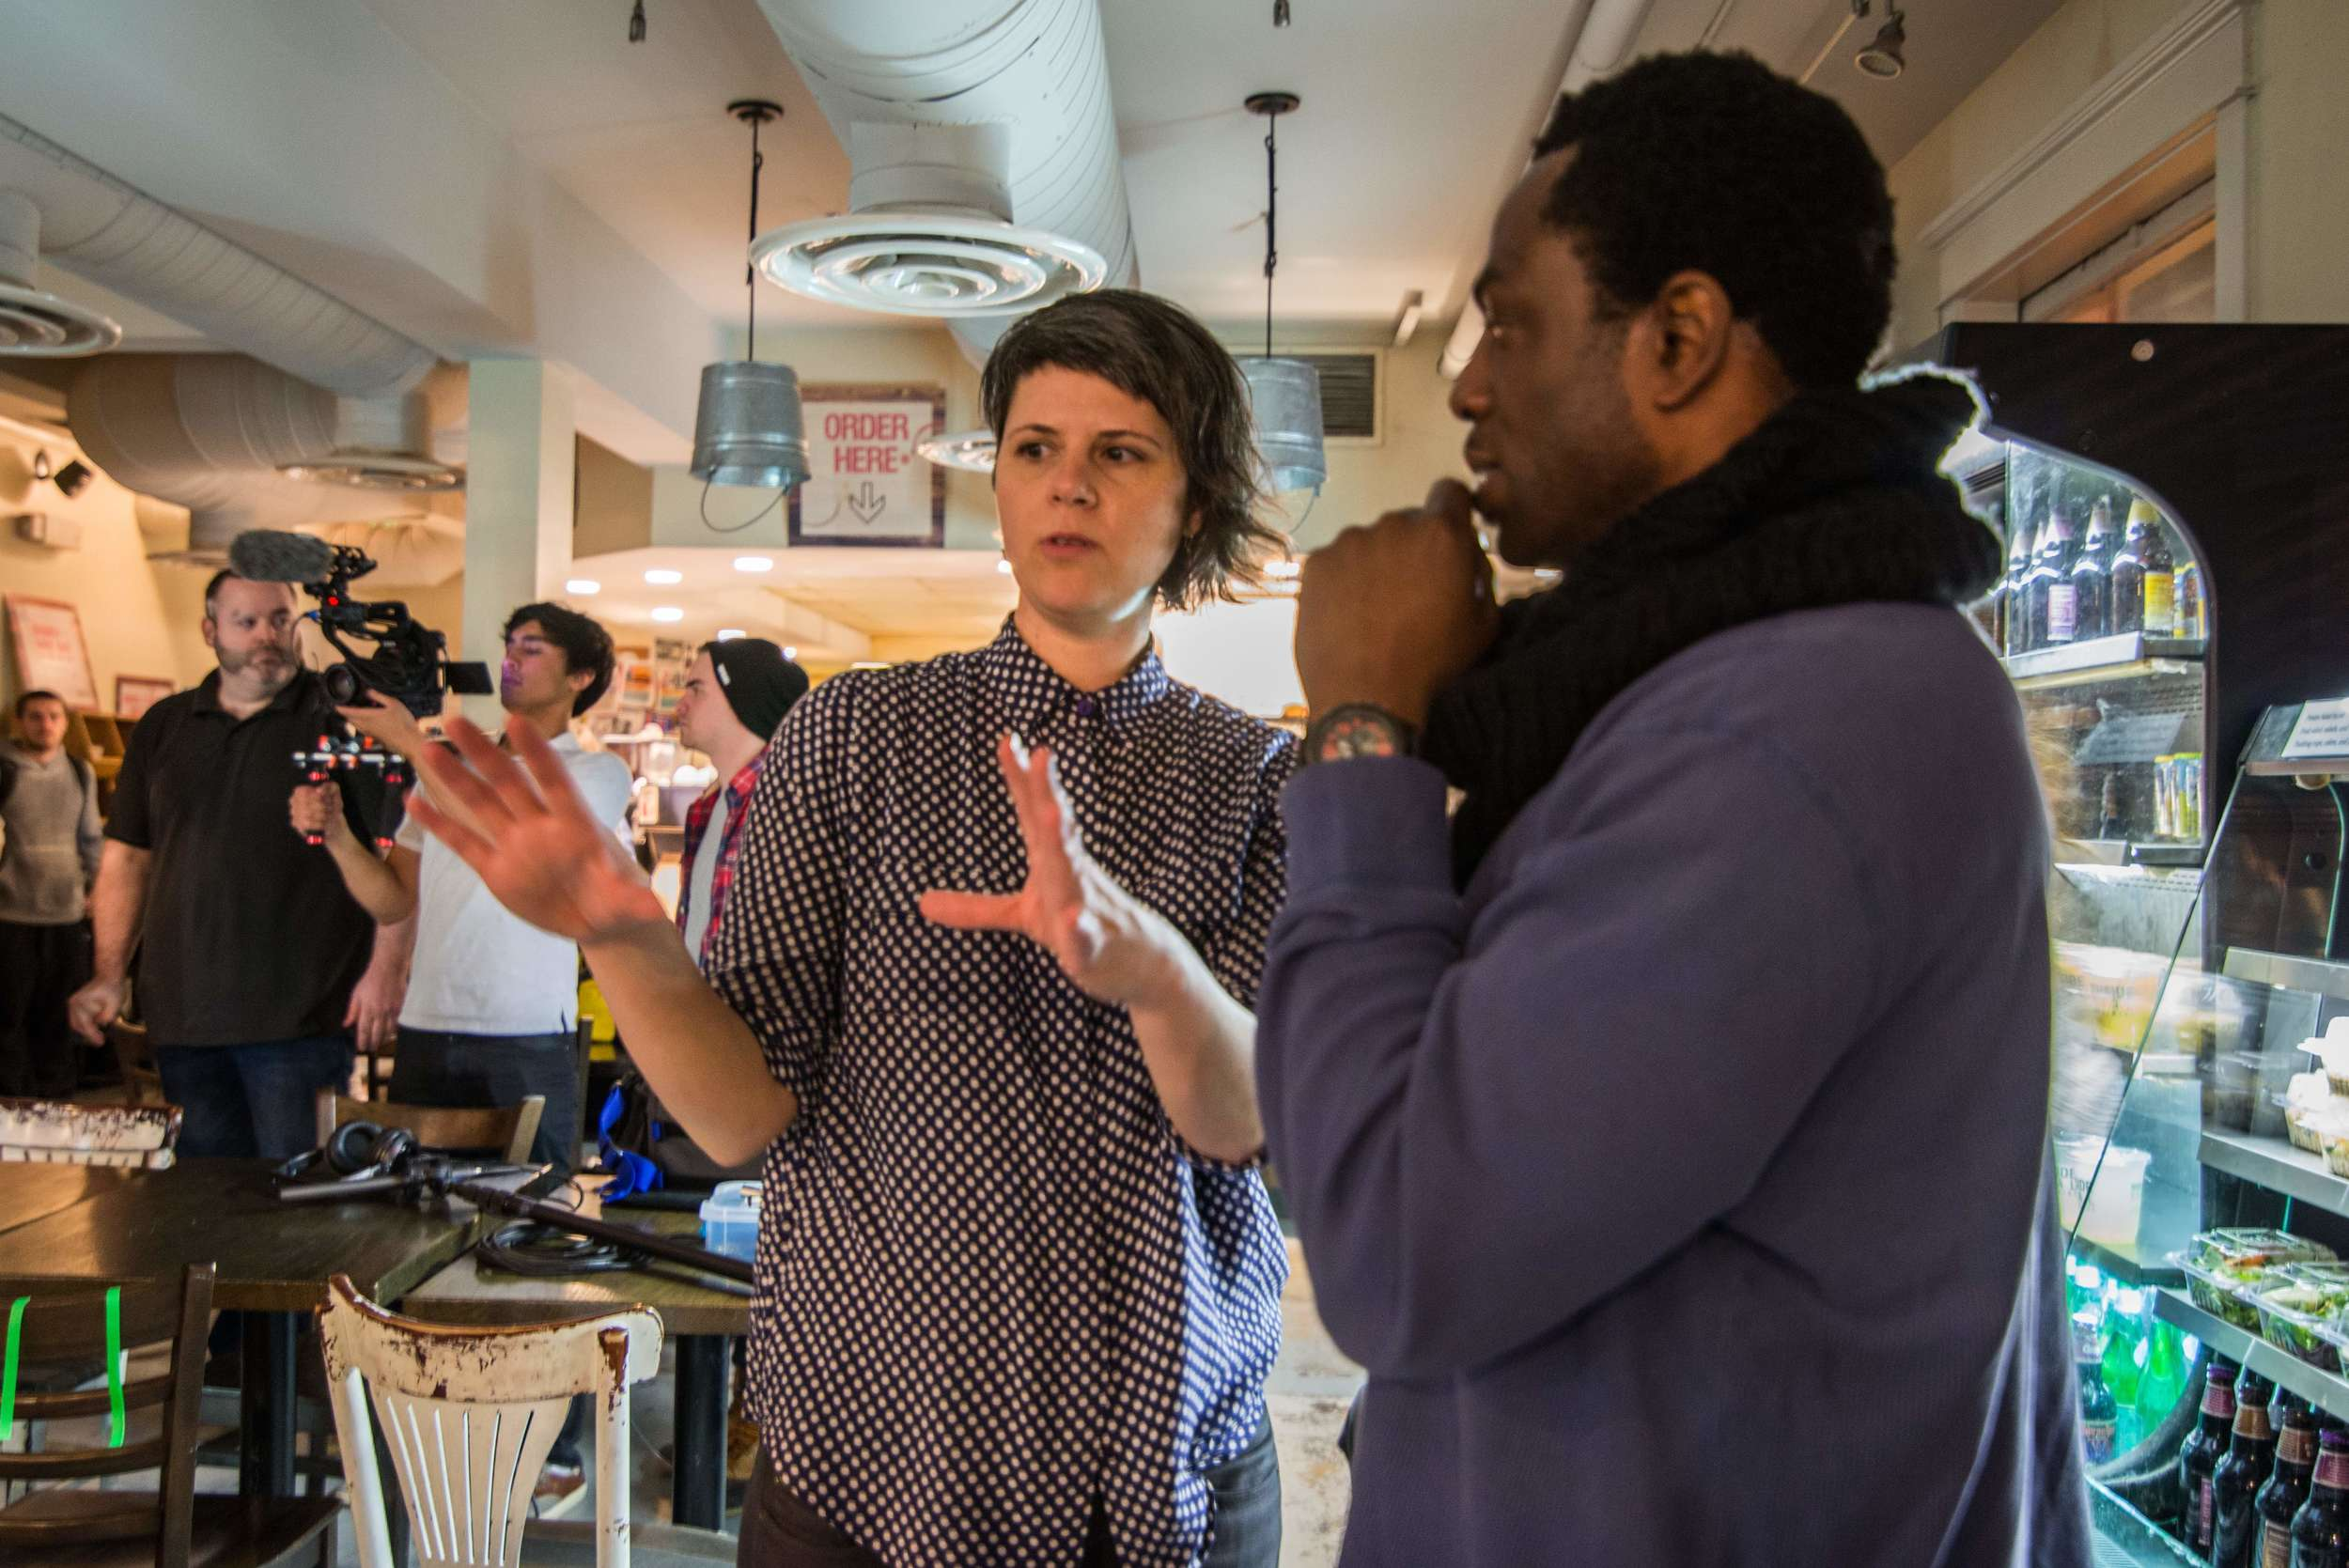 Chesler and Charles consider the next shot on location at Northside Social in Arlington, VA. Image by Dixie D. Vereen